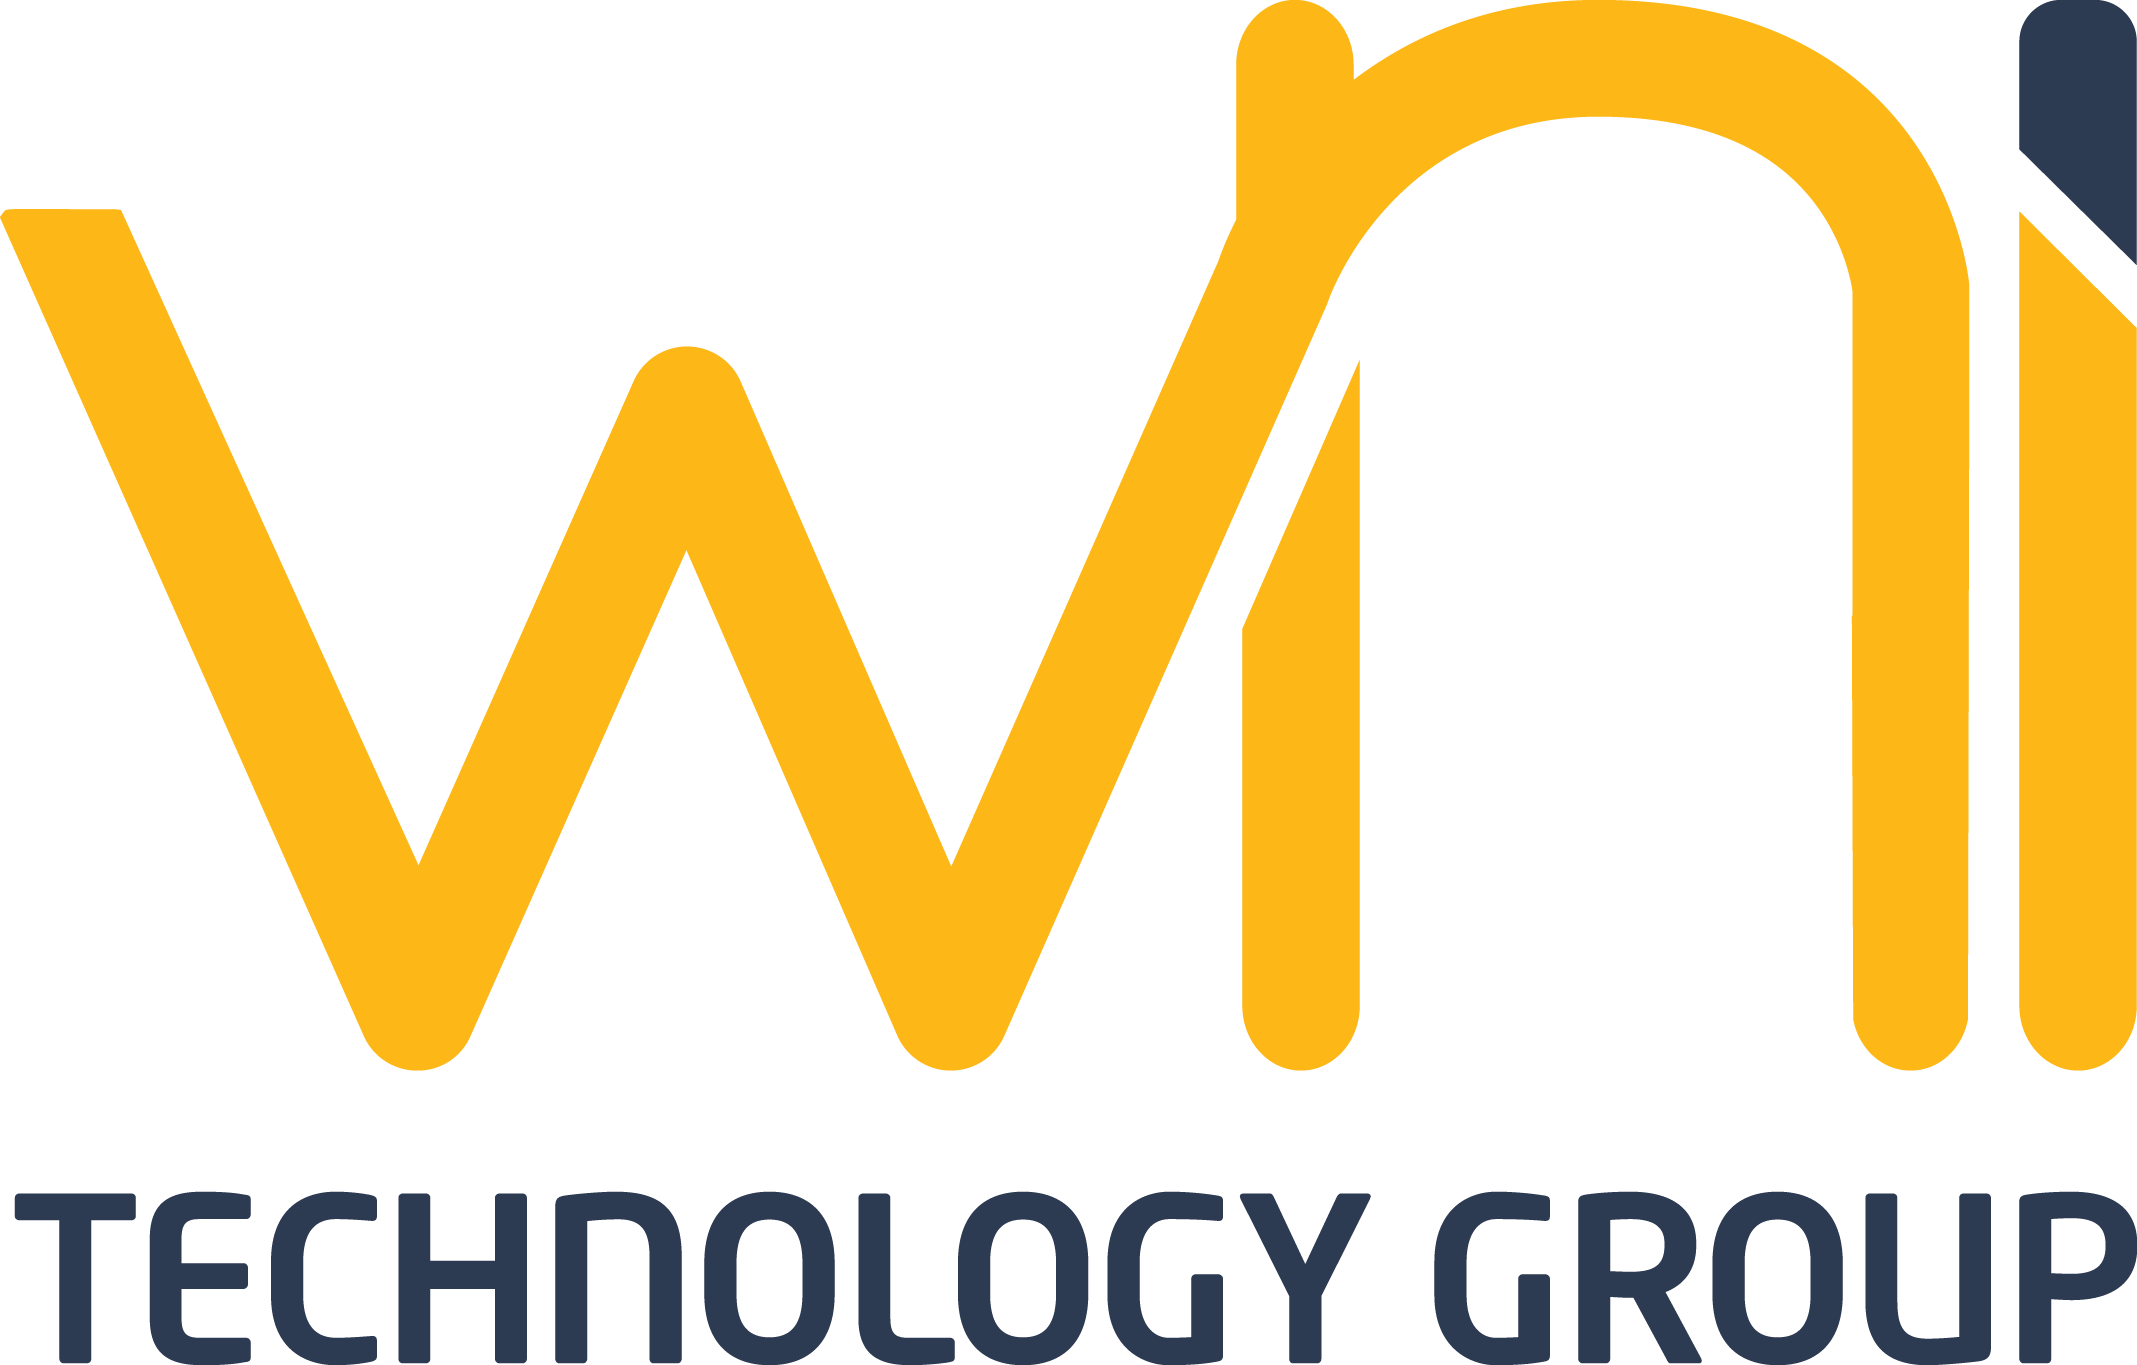 WNI Technology Group